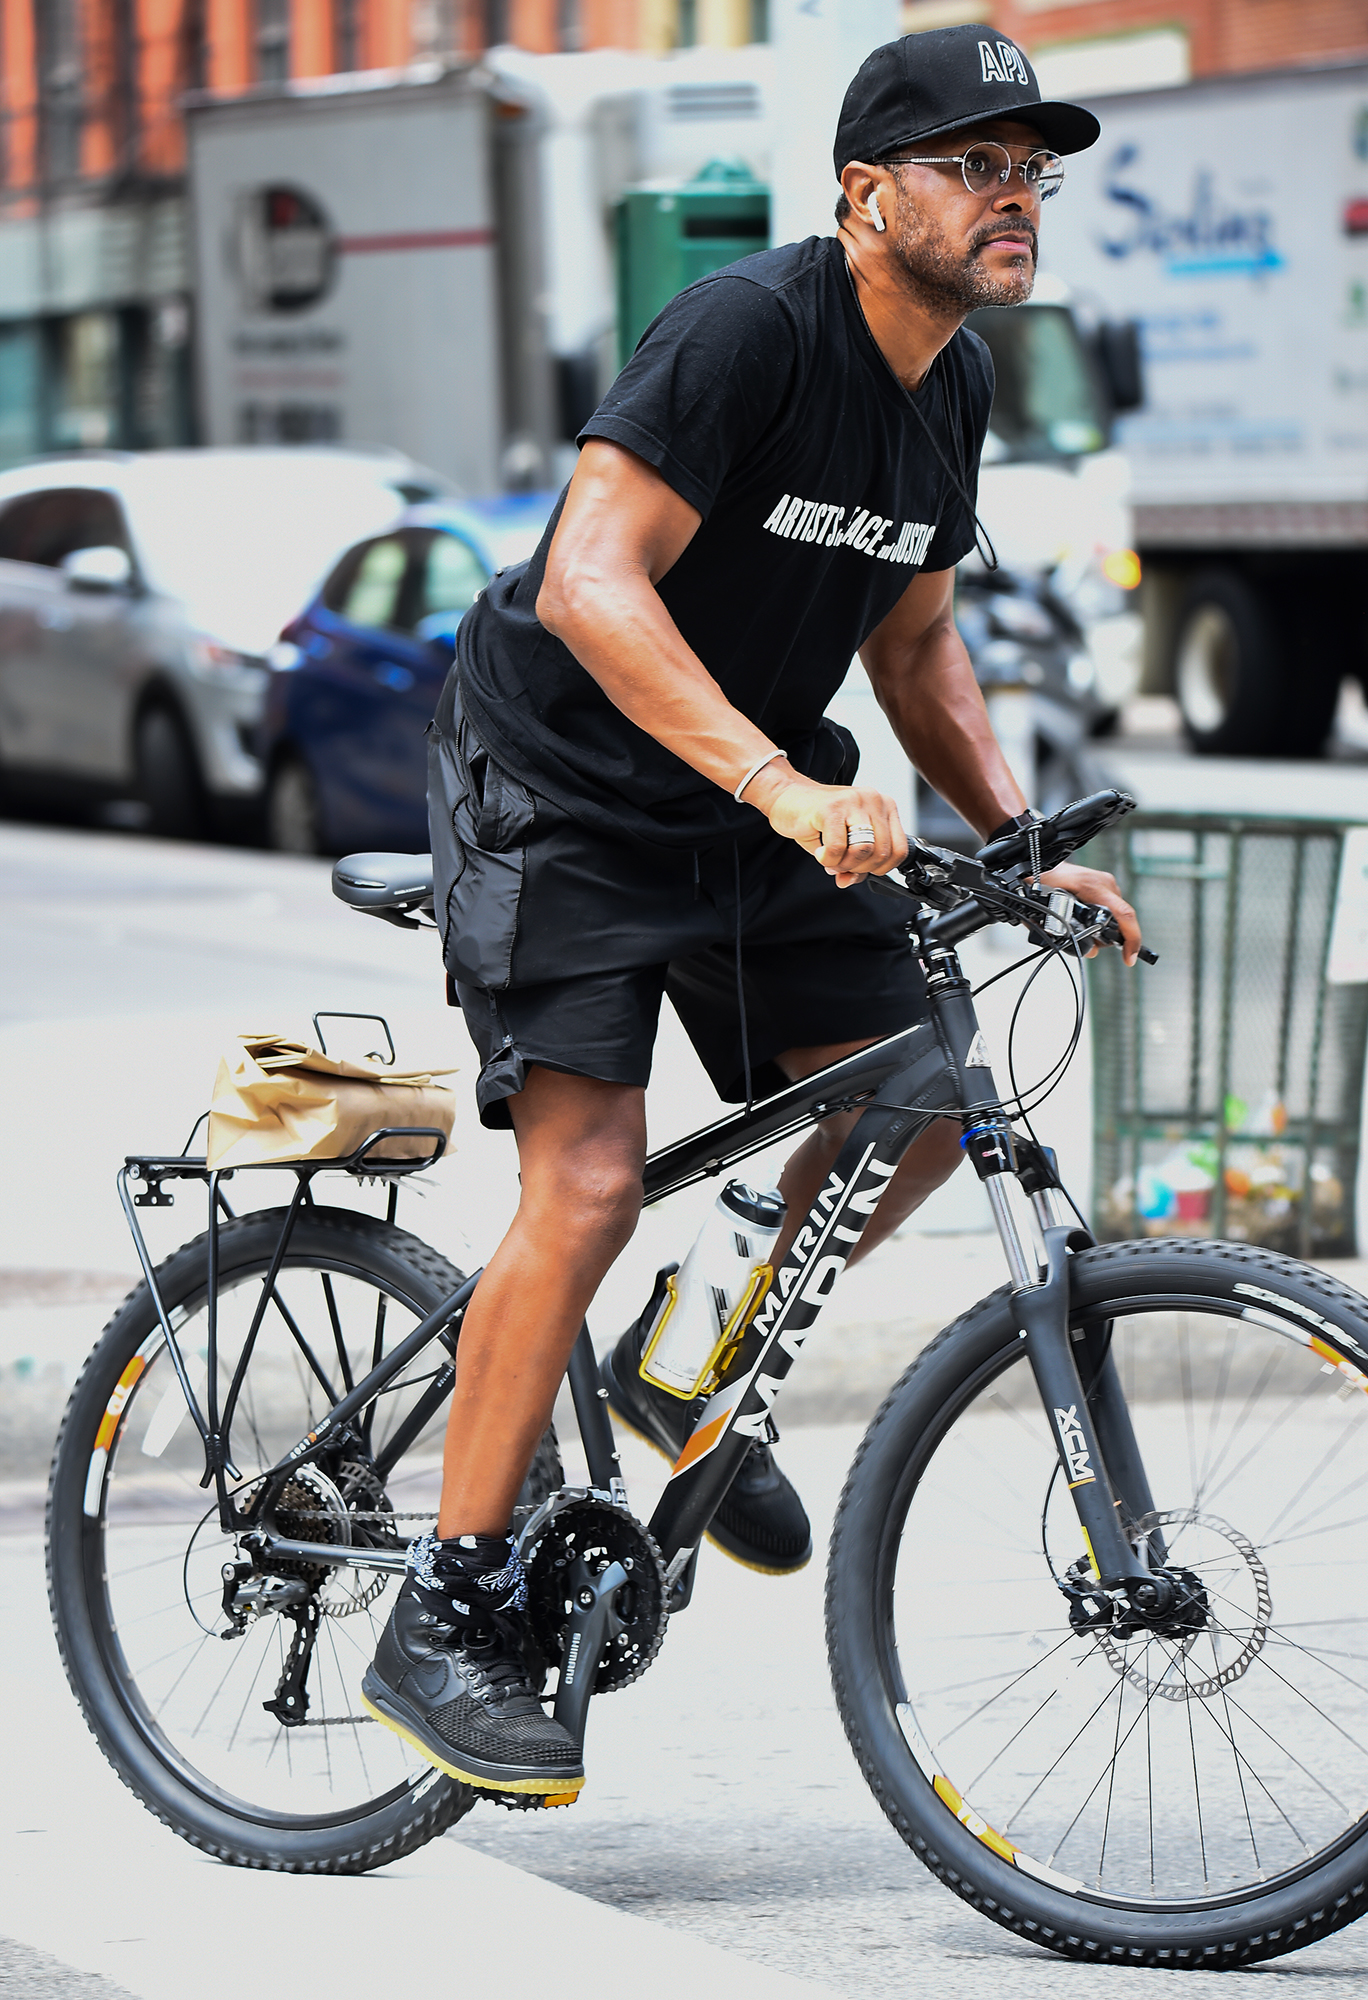 maxwell-biking - With a water bottle in tow and a package strapped to the back of his bike, the singer cycled through downtown NYC on August 2, 2018.